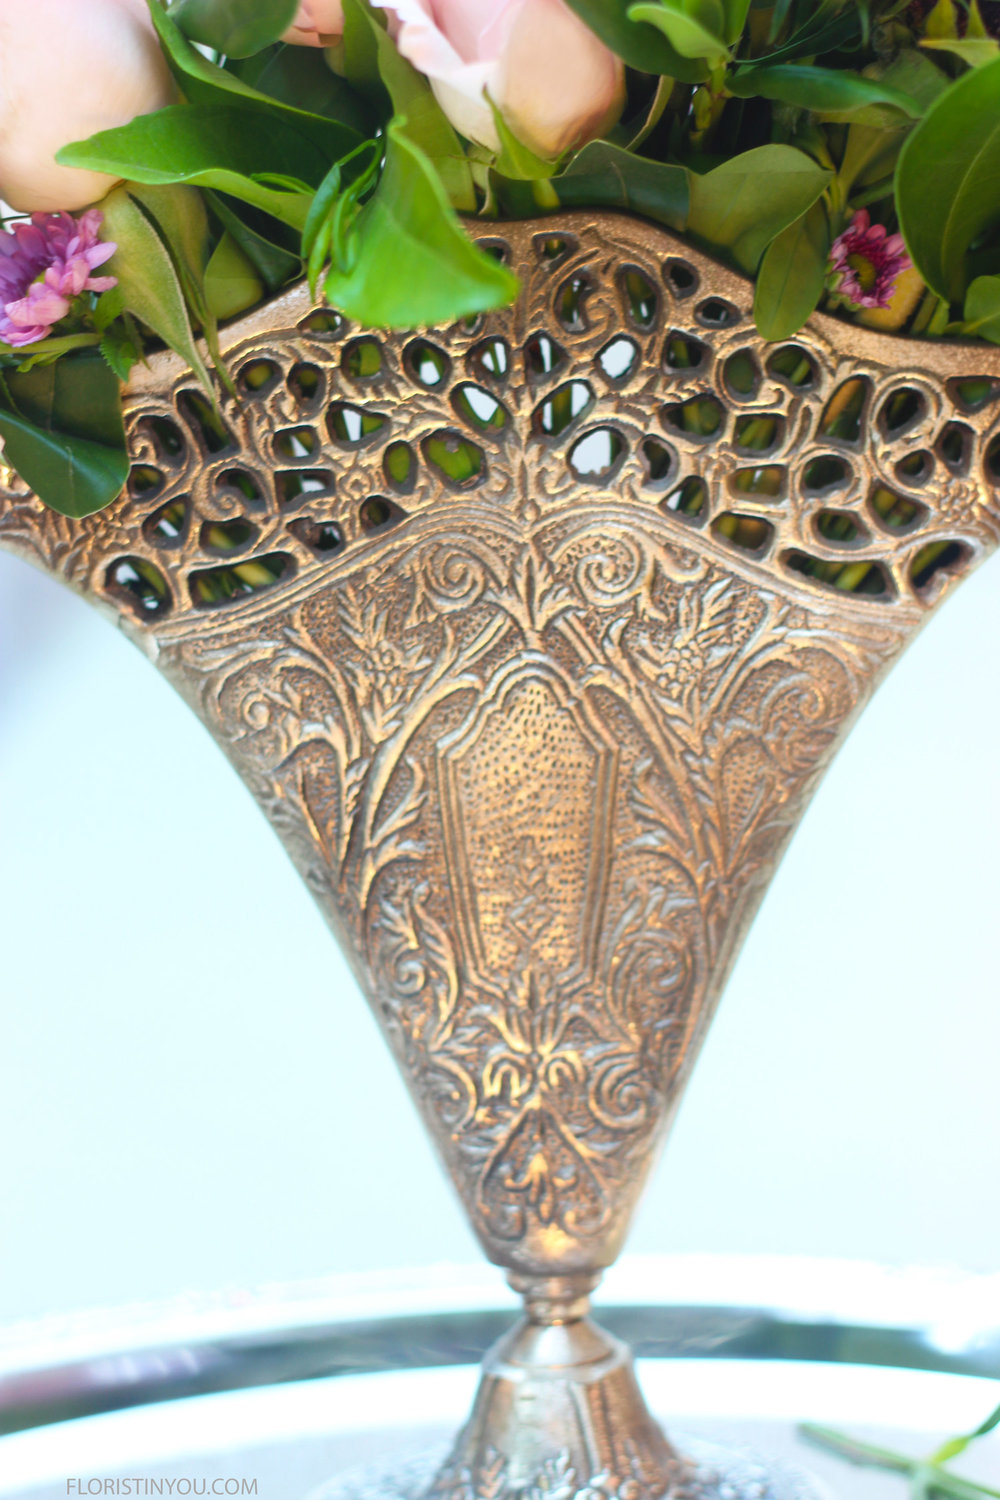 Note the intricate floral scroll work on the fan vase.